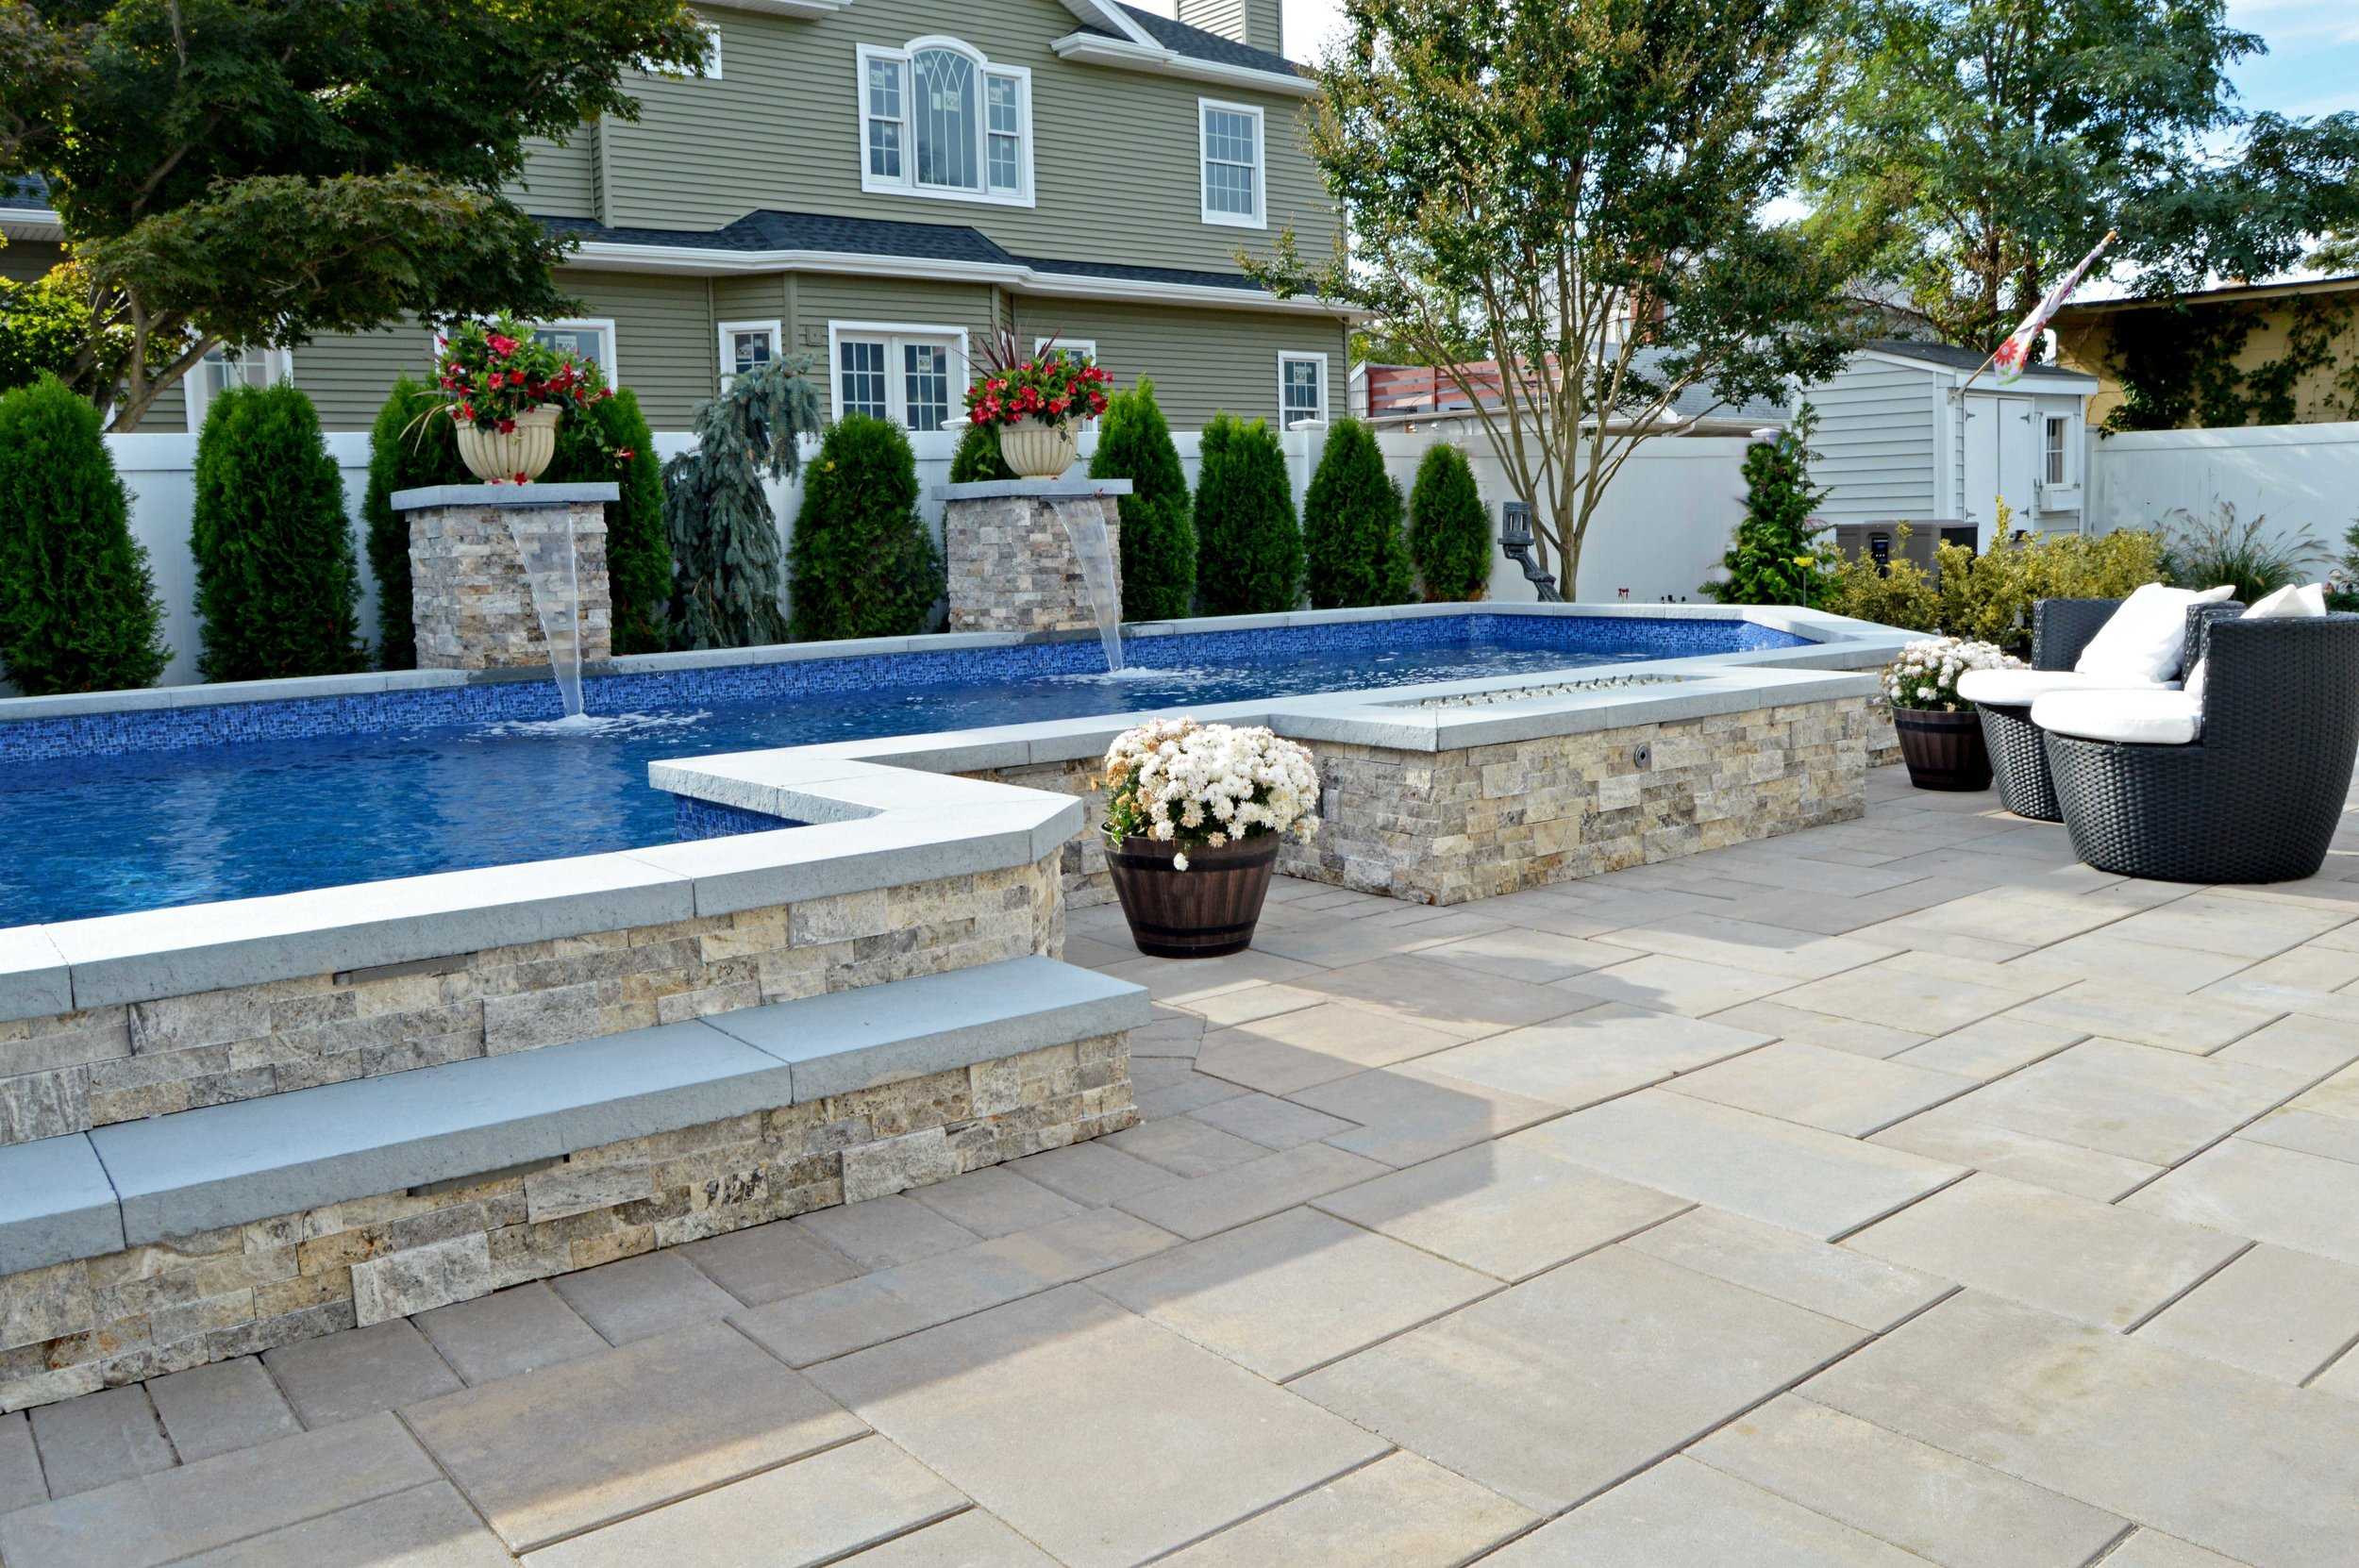 Swimming pool design with landscape lighting in Smithtown, New York